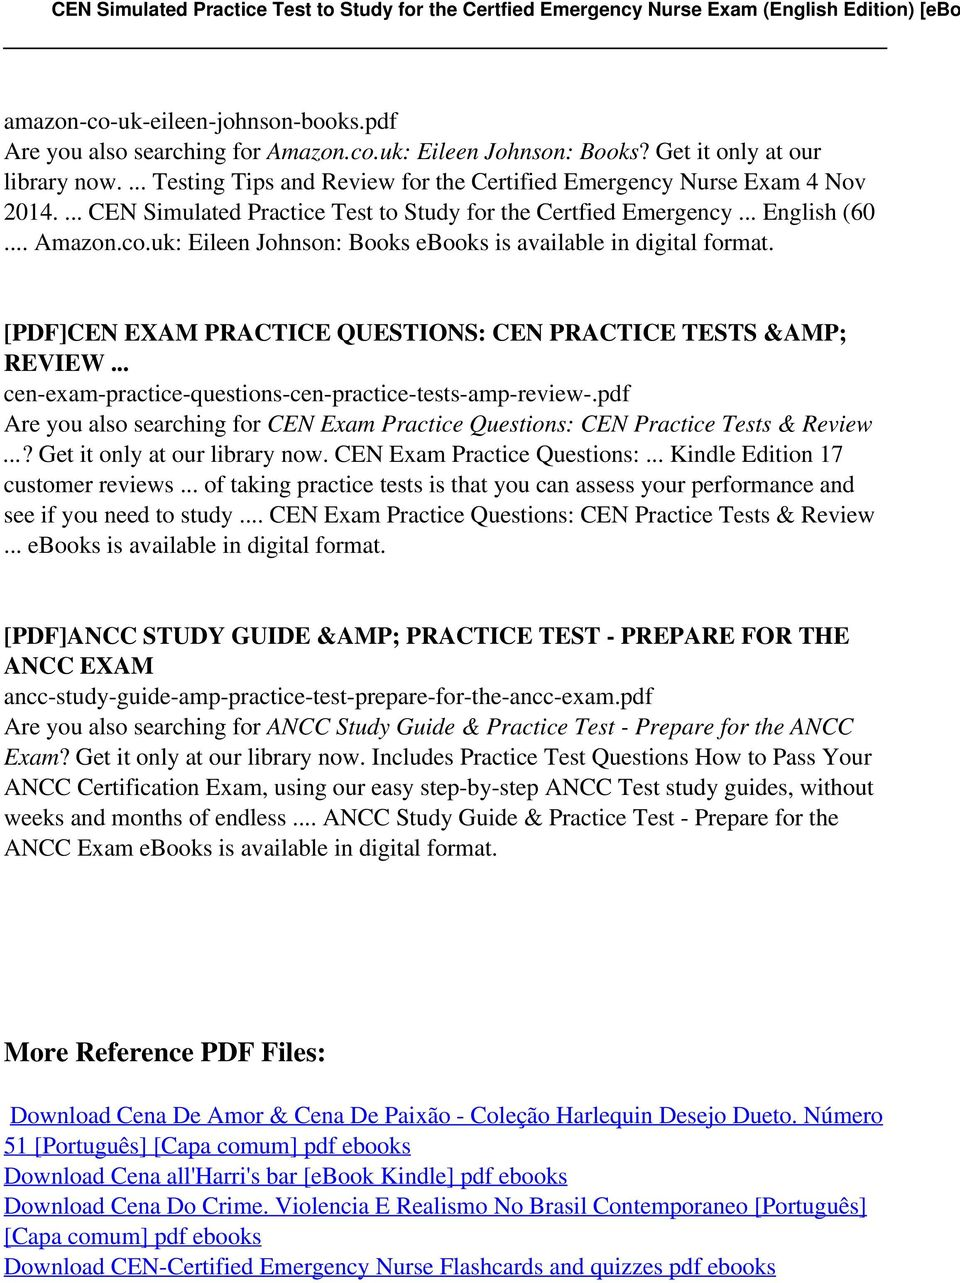 Cen study guide 2013 ebook array cen simulated practice test to study for the certfied emergency rh docplayer net fandeluxe Gallery